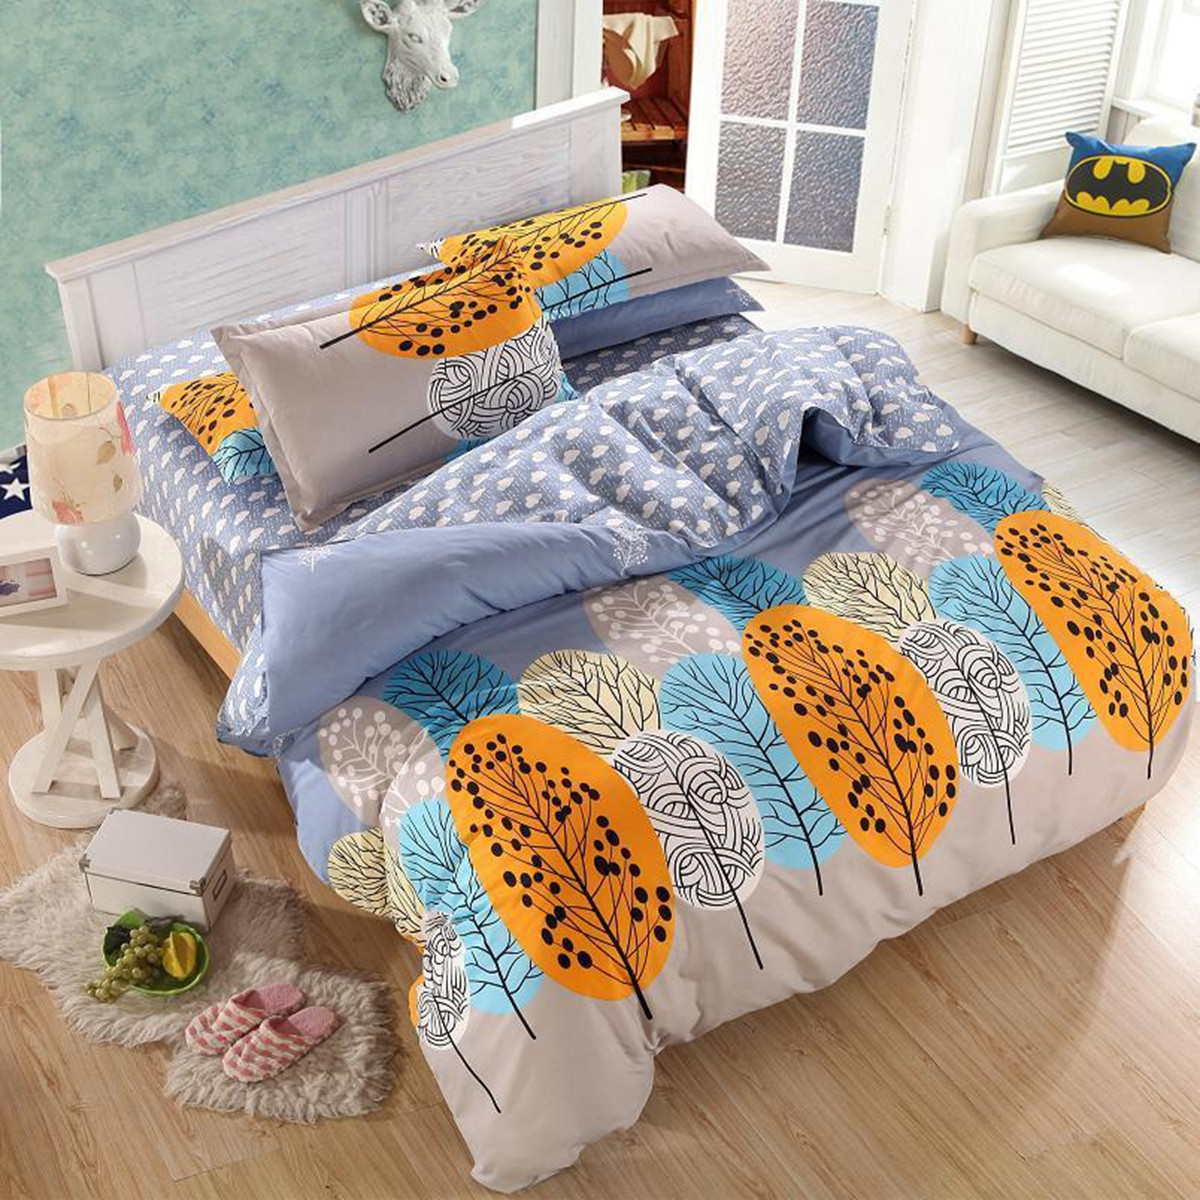 3or 4Pcs Leaves Printed Bedding Set Duvet Cover Sets Bed Include Bed Sheet Pillowcase SKU334414